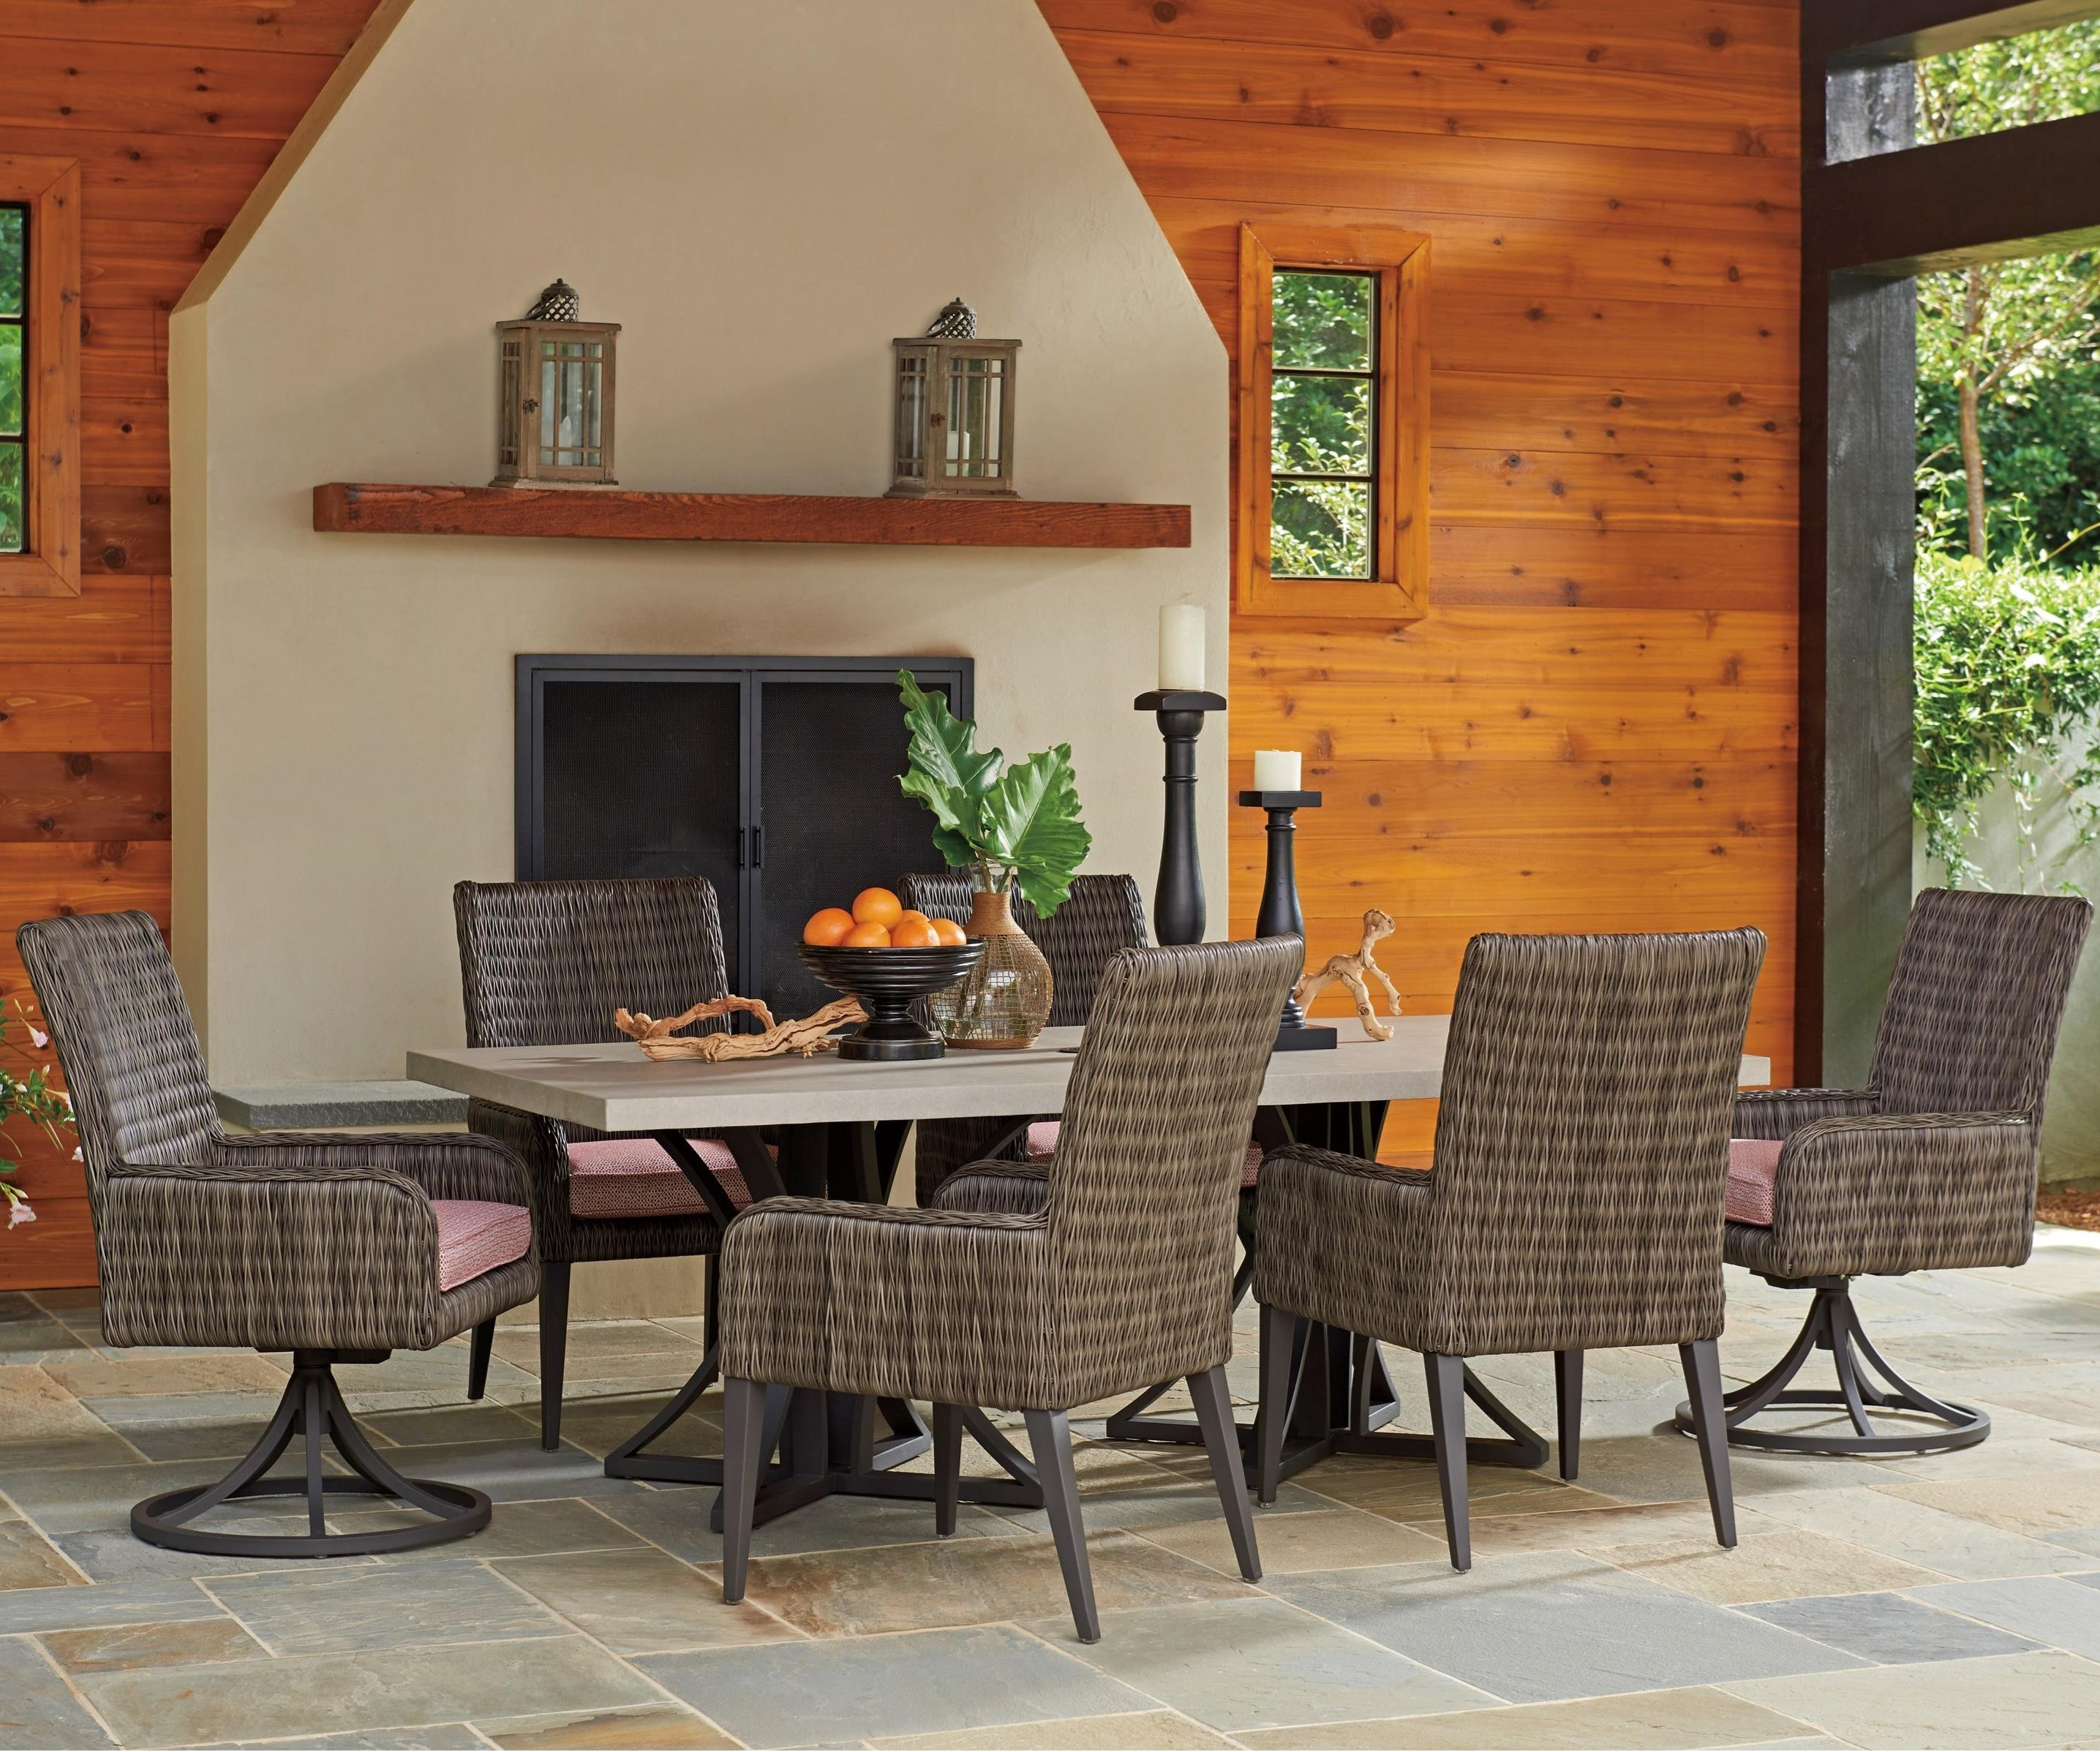 Cypress Point Ocean Terrace 7 Pc Outdoor Dining Set by Tommy Bahama Outdoor Living at Baer's Furniture